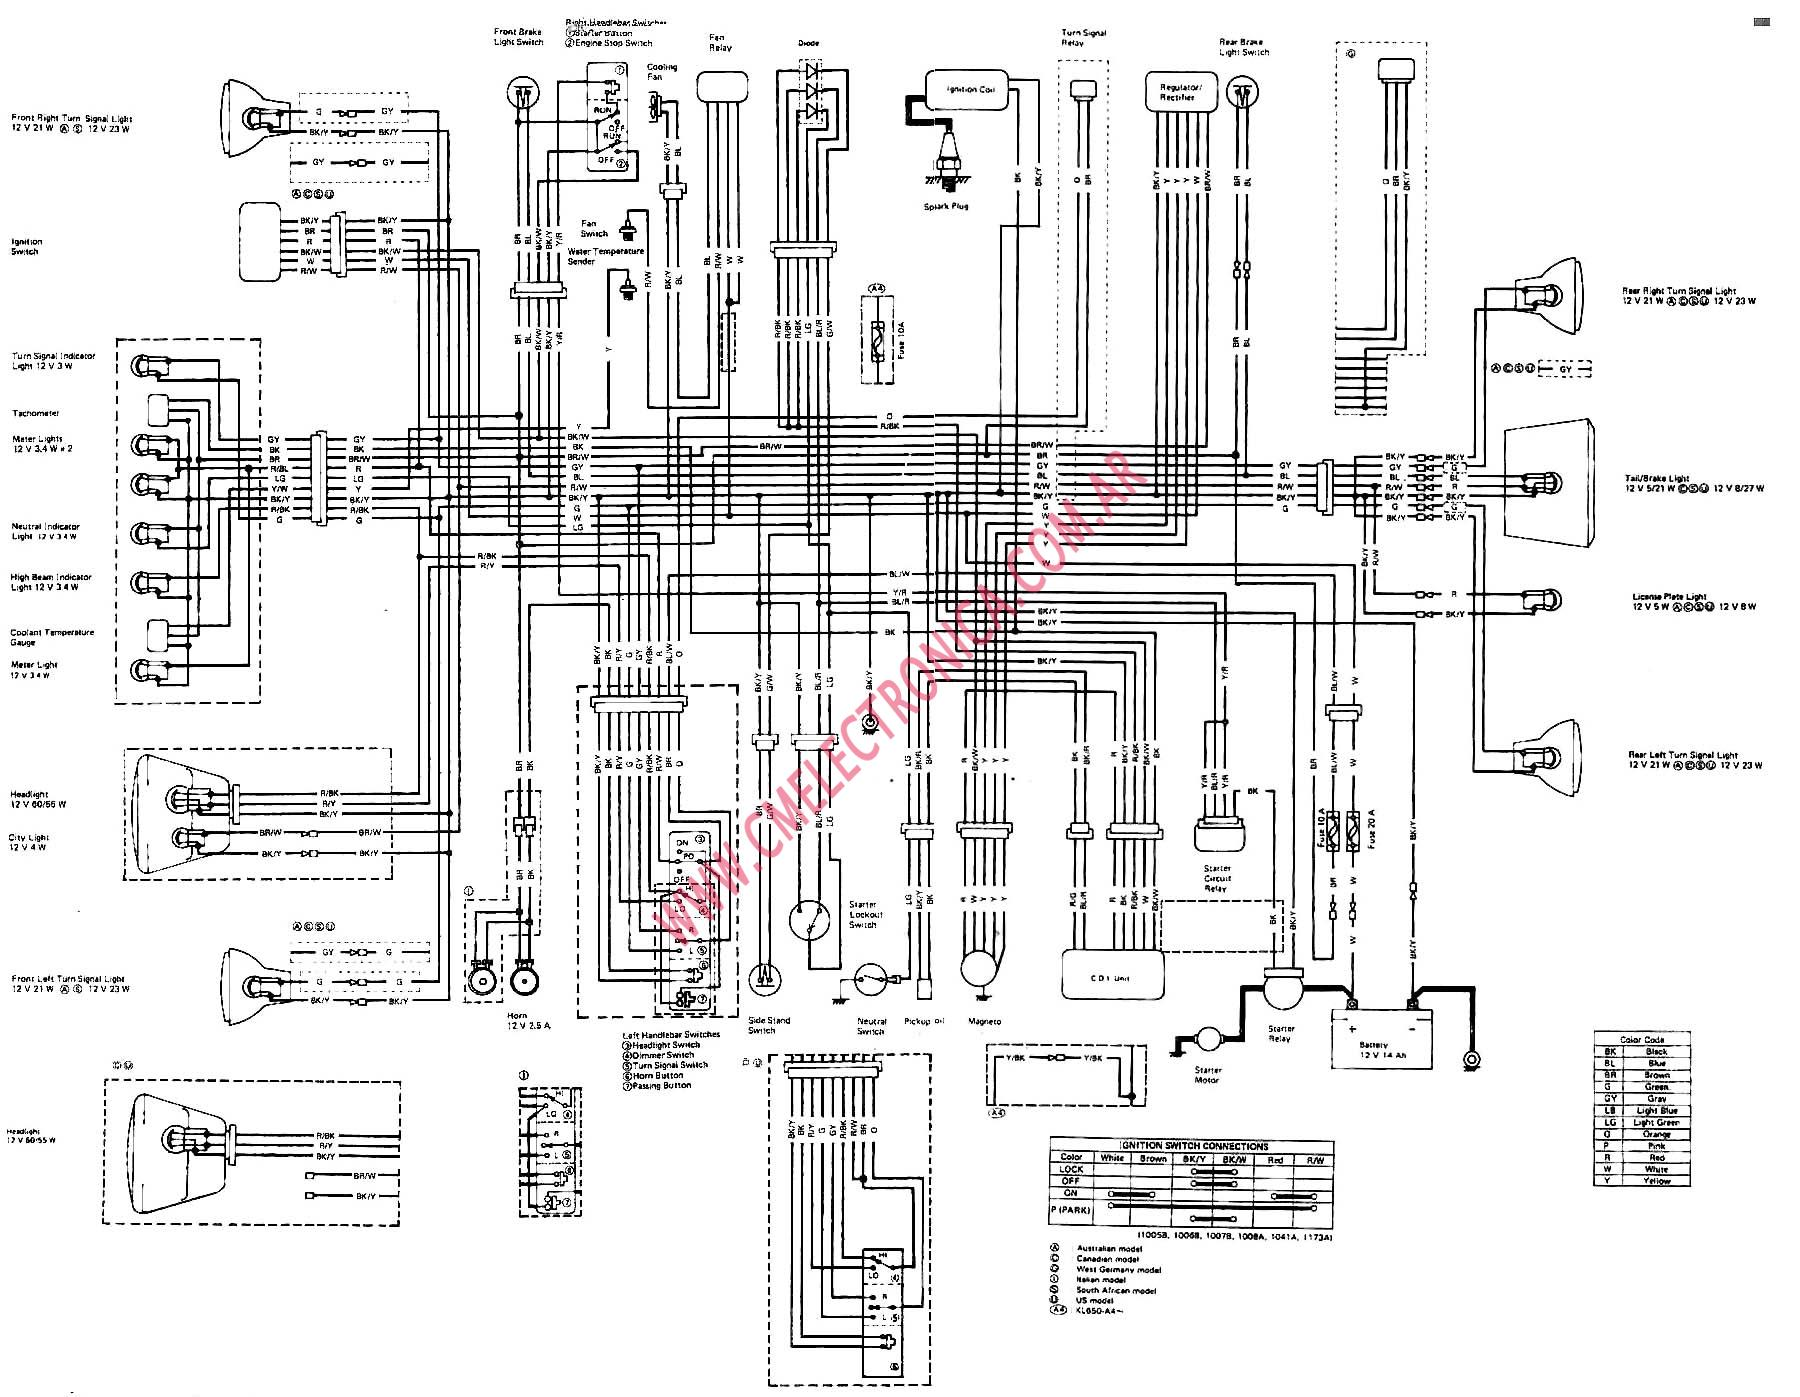 Klr 600 Vacuum Diagram Wiring Or Schematic Wire Data Schema Kawasaki Cdi Box 650 View Center U2022 Rh Abetter Pw